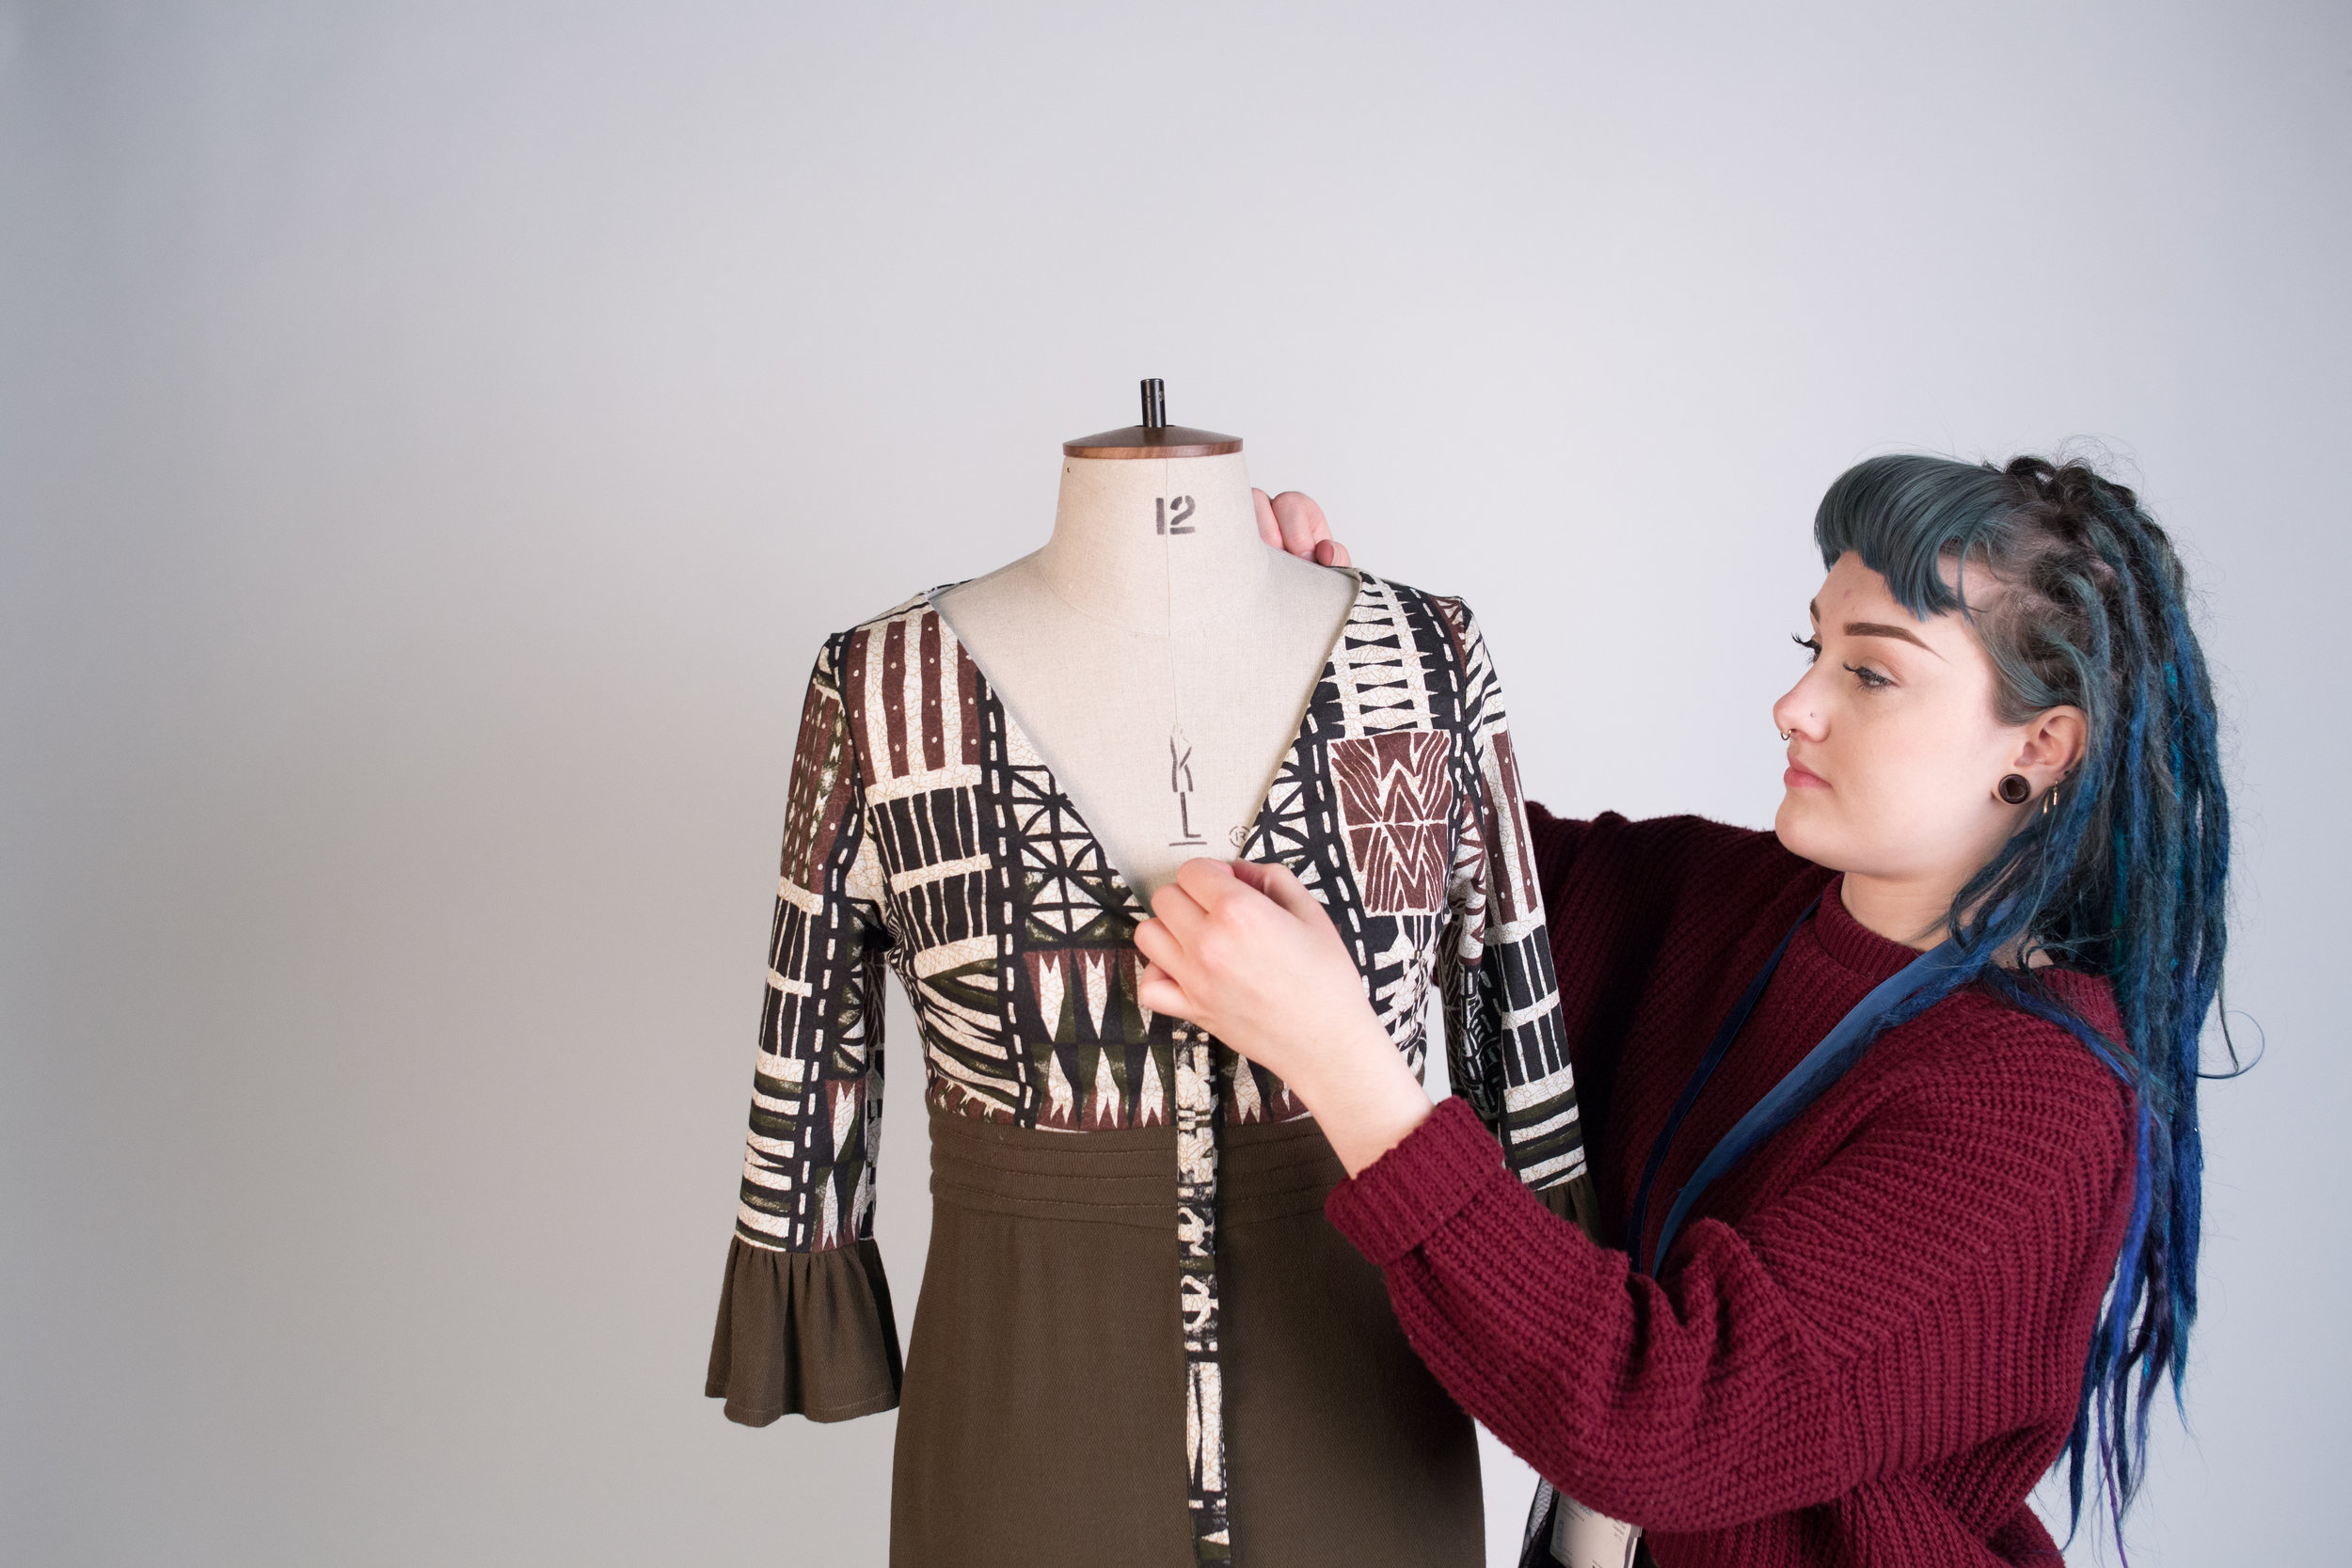 April Spence - SHOWCASE OF NEWLY LAUNCHED SUSTAINABLE WOMENSWEAR LABEL, BLUE OXENFUTURE PLANS: SECURED A STUDIO TENANCY AT WEST STUDIOS. NOW WORKING ON S/S18 COLLECTION